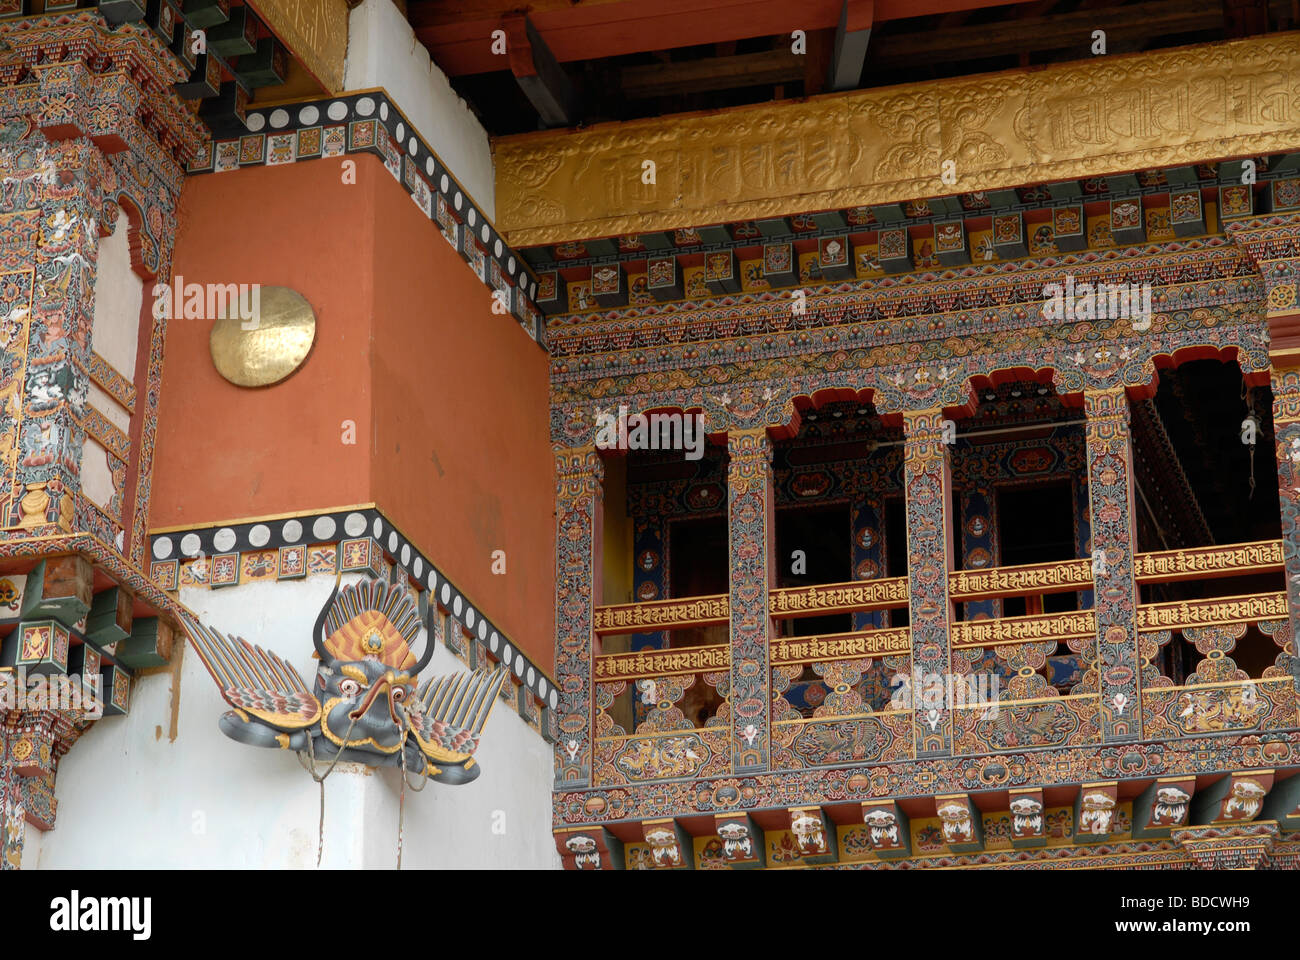 Colorful painting  and woodwork at Gangtey Gompa, the largest Nyingma monastery in Bhutan - Stock Image